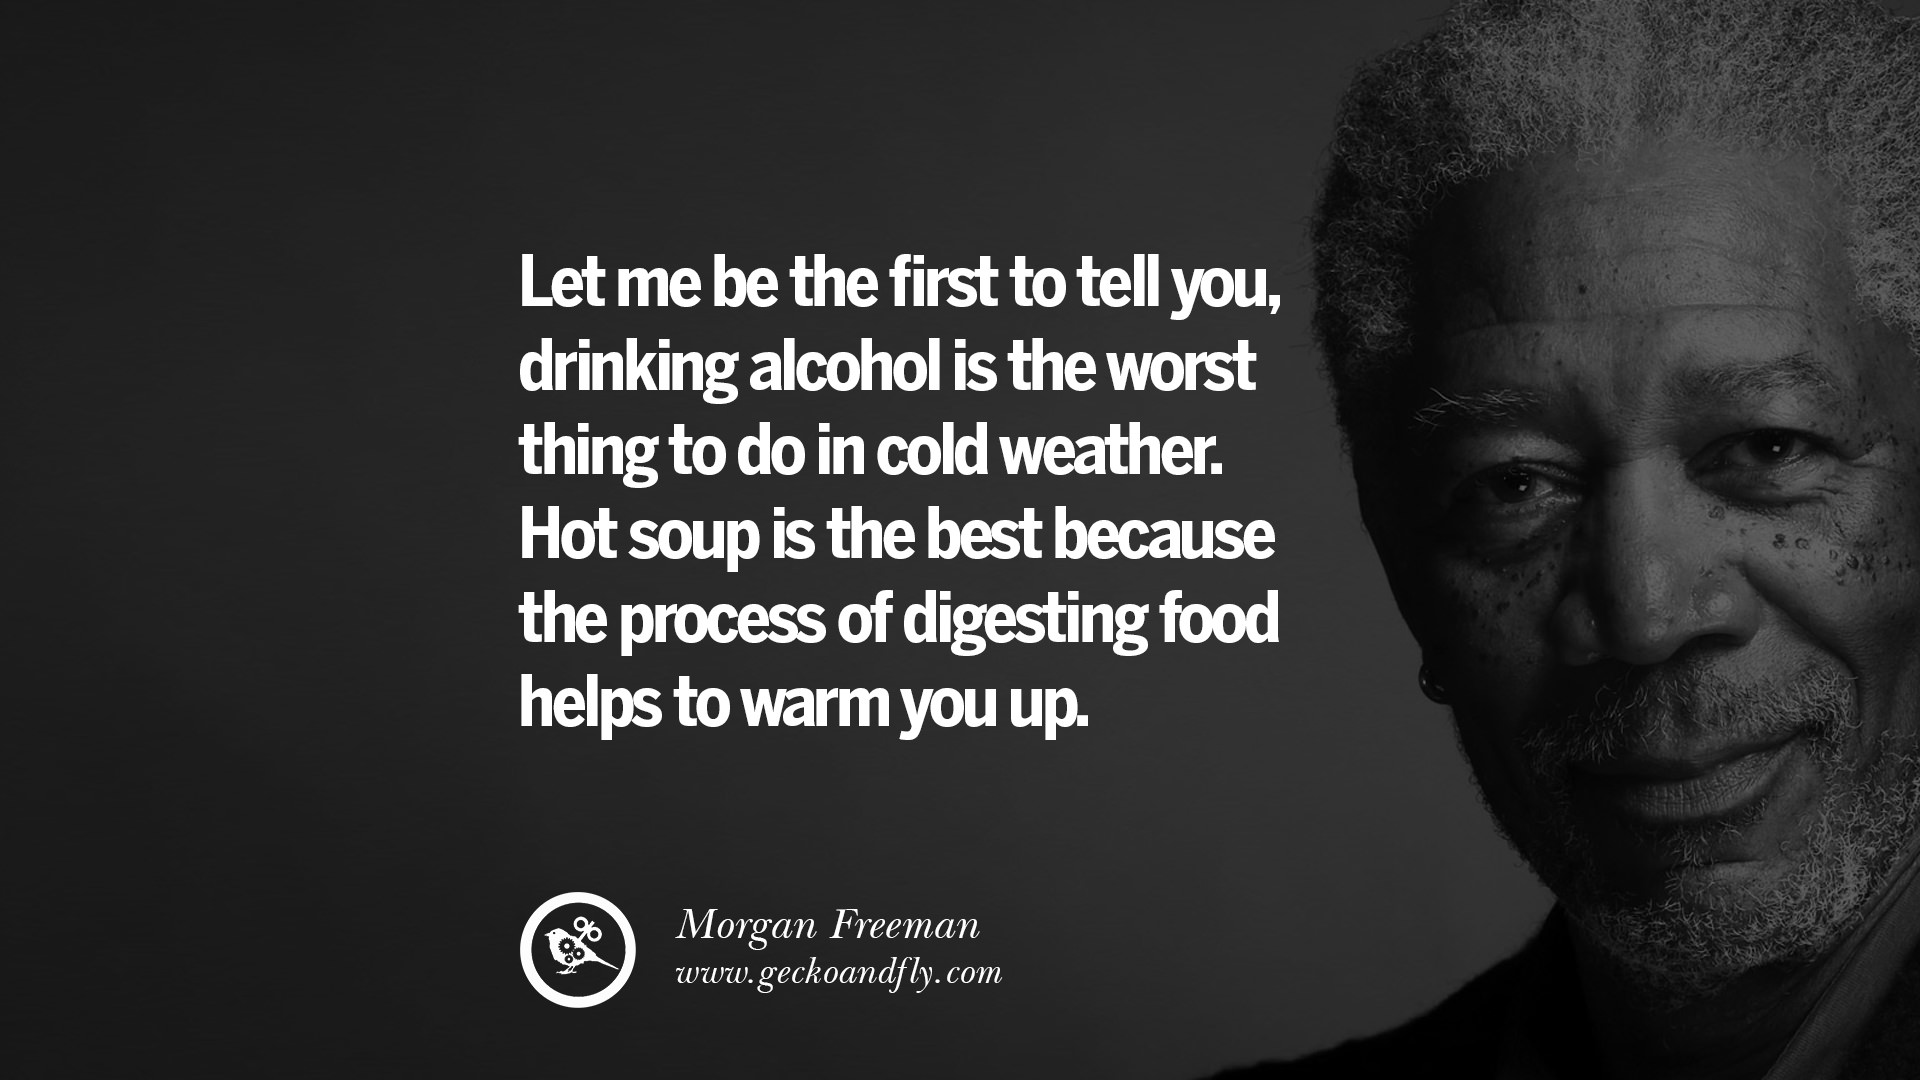 Religious Quotes On Life 10 Morgan Freeman Quotes On Life Death Success And Struggle